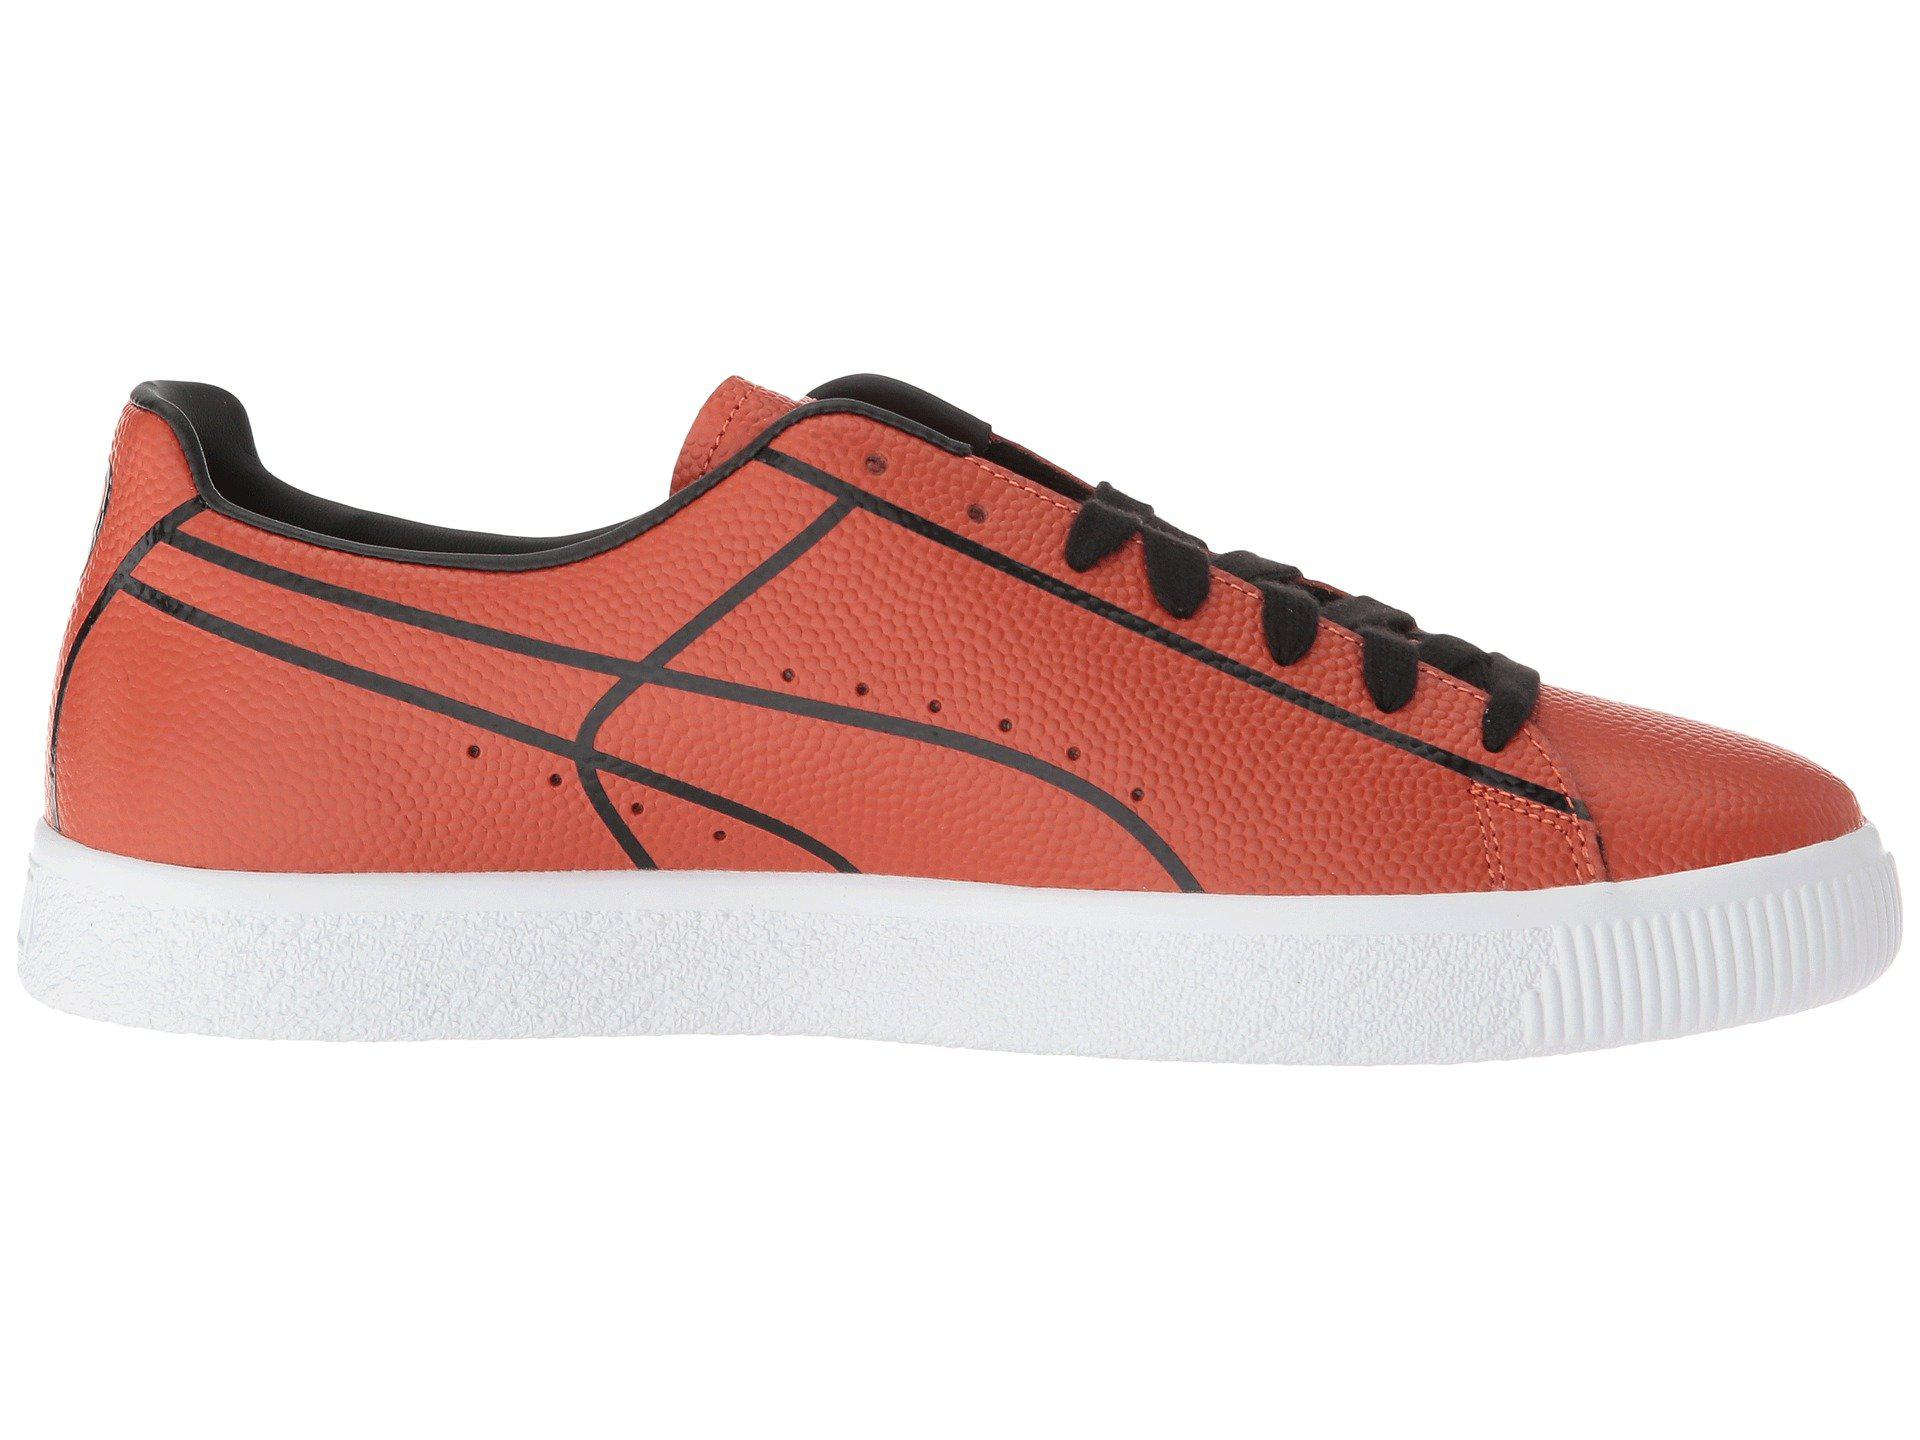 PUMA Leather Clyde Bball Madness for